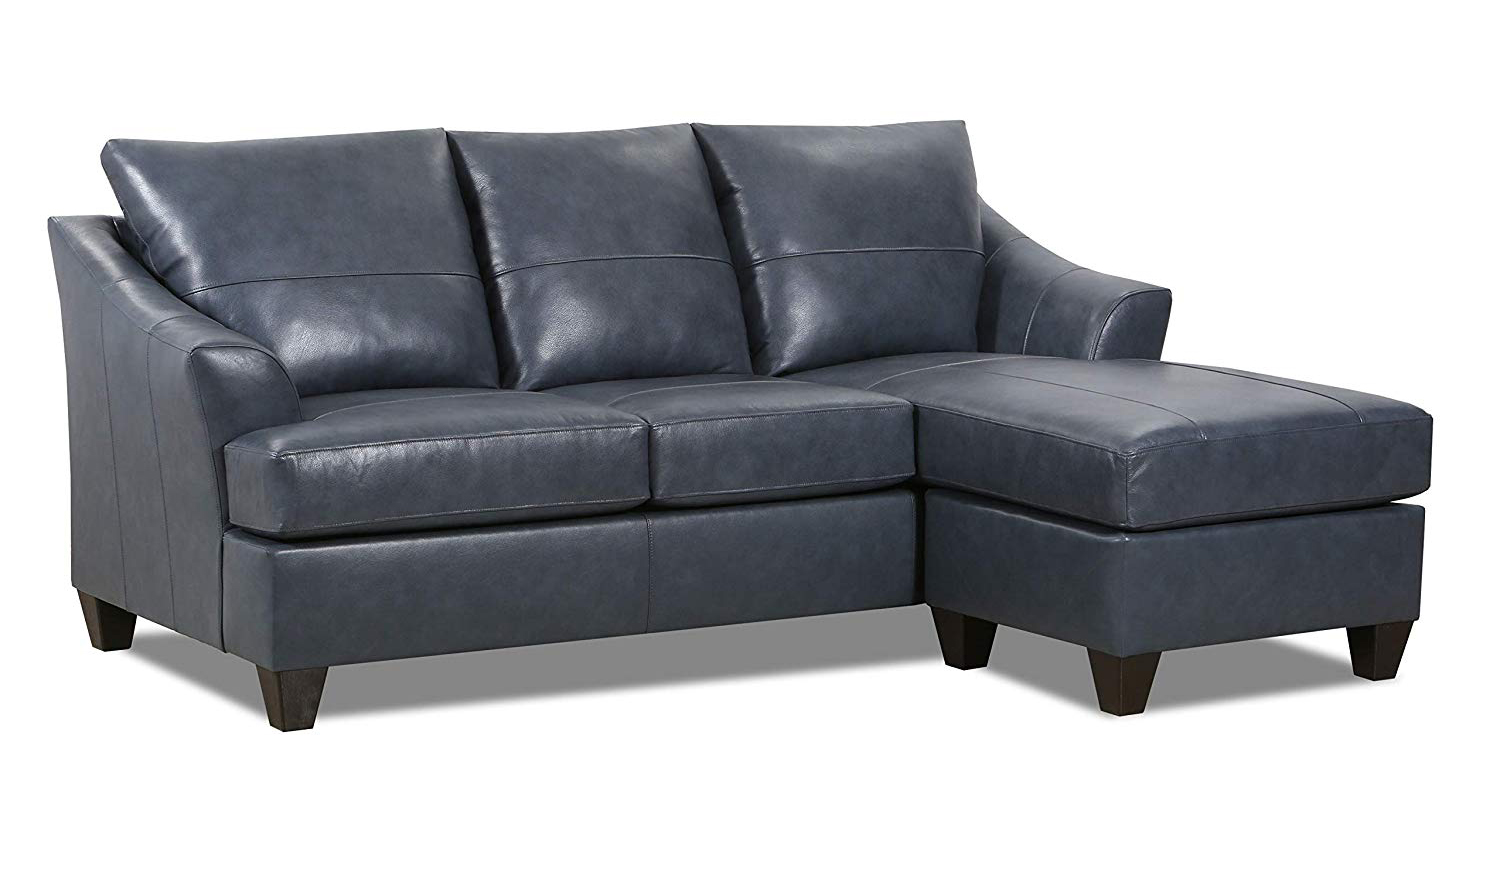 UN2063 Soft Touch Shale (Sofa w Chaise)